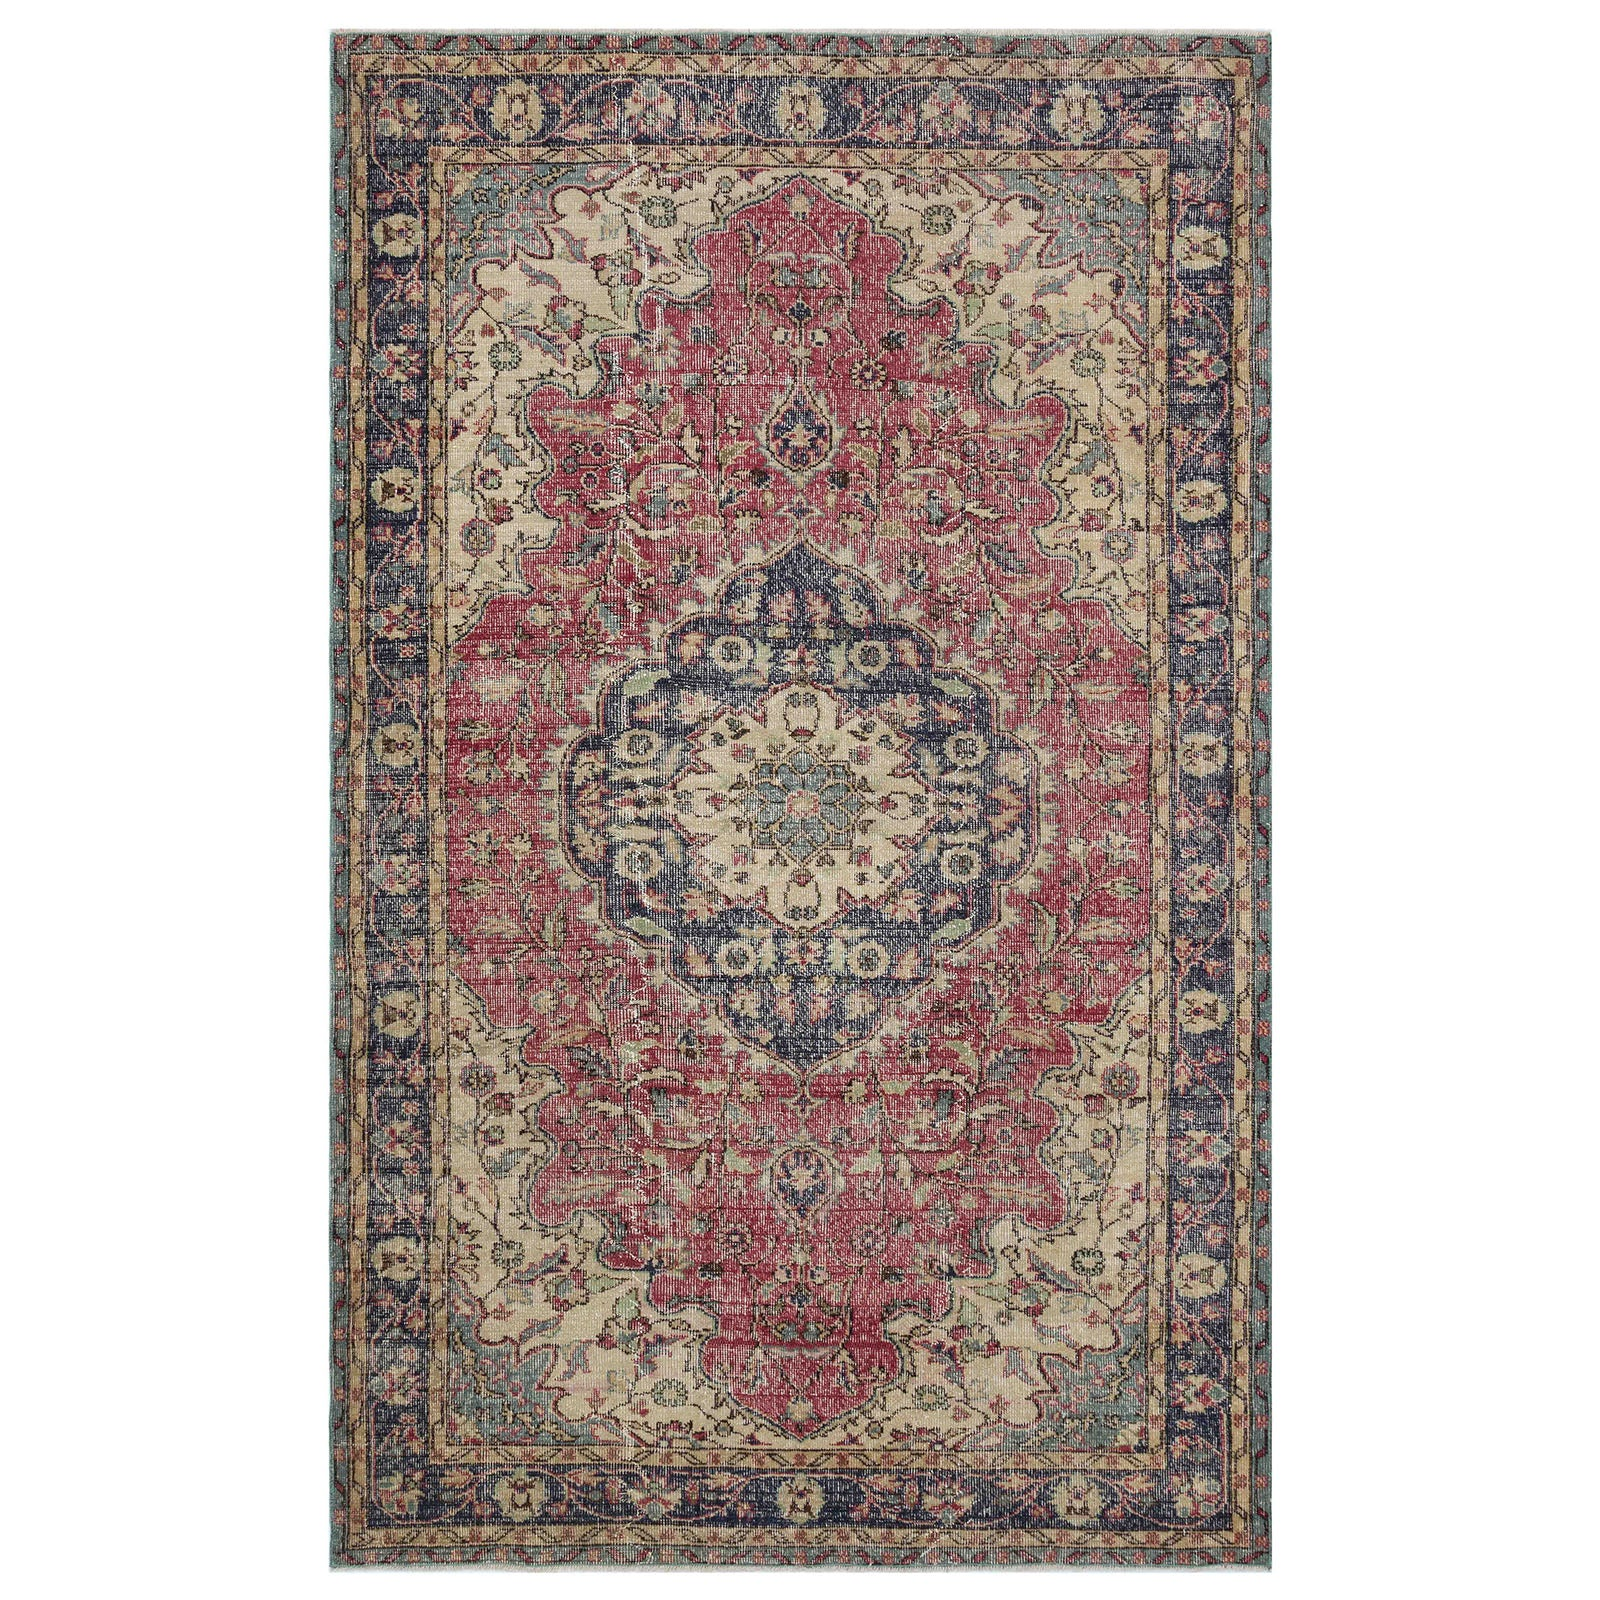 Hali 155X253  CM Bursa Handmade over dyed rug 1969